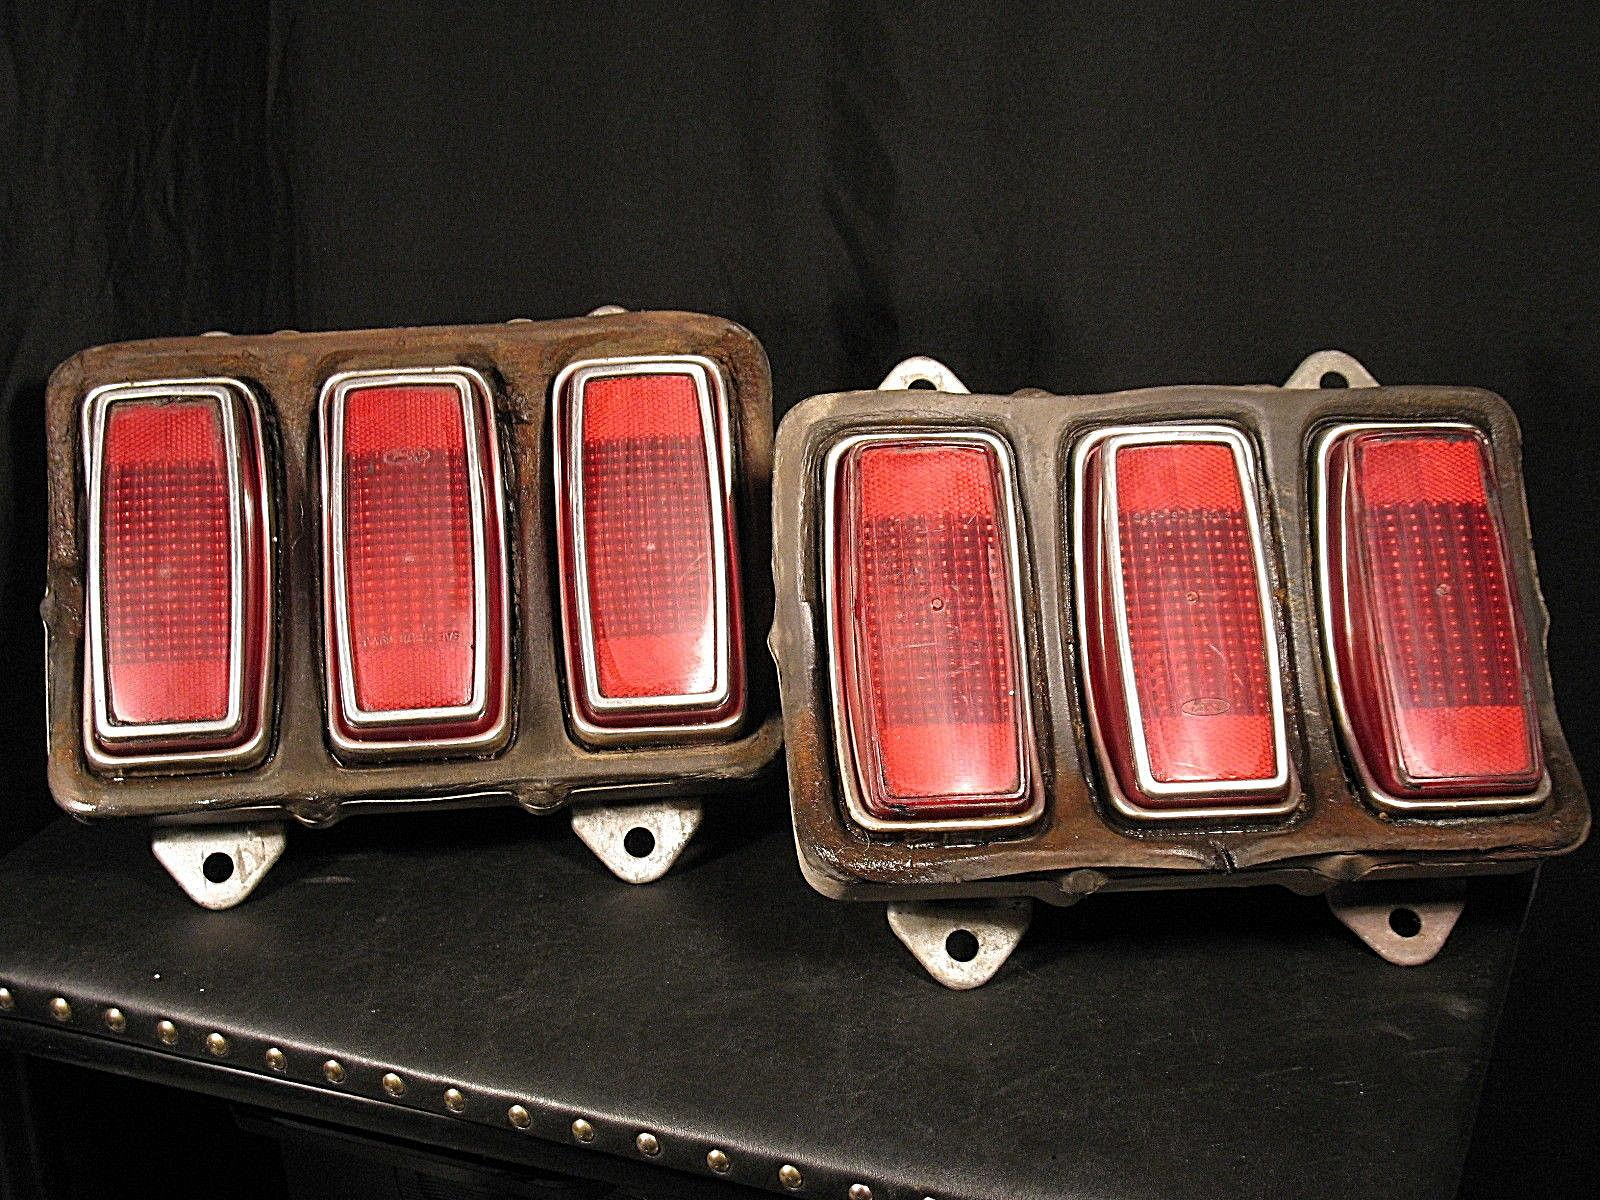 1969 ford mustang tail lights mach 1 shelby boss gt original housings lens